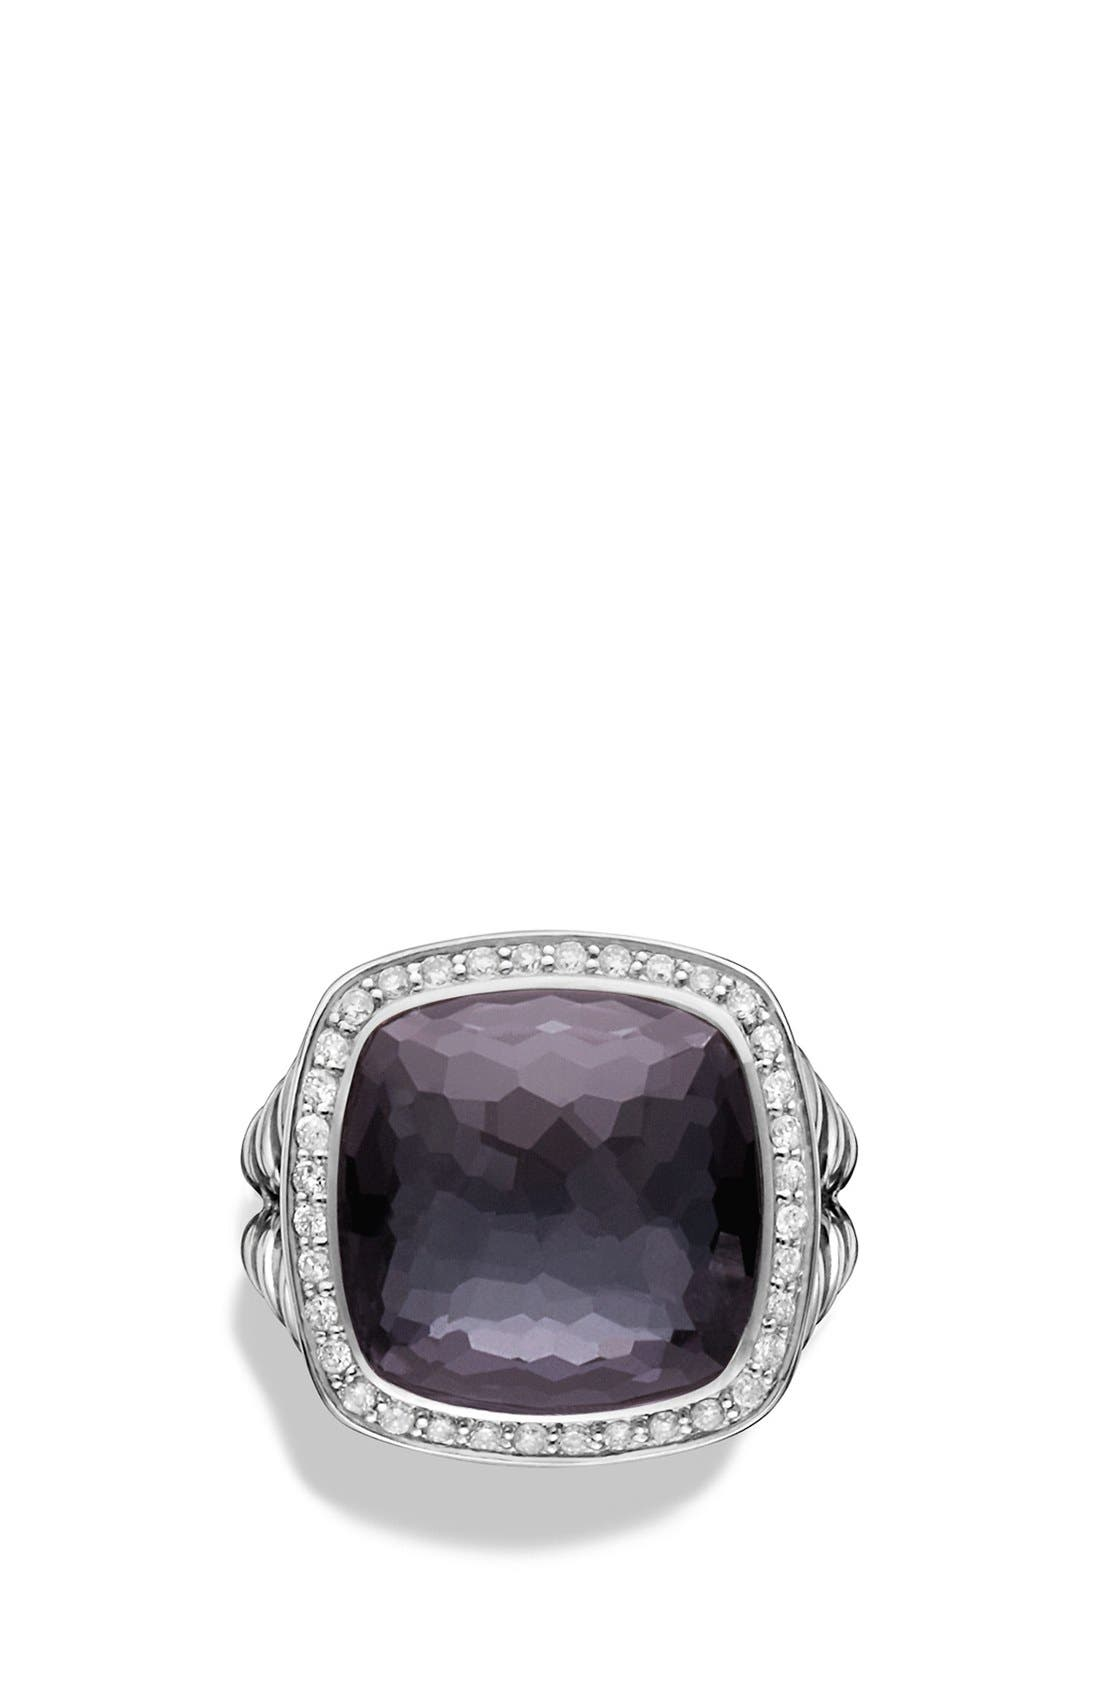 'Albion' Ring with Semiprecious Stone and Diamonds,                             Alternate thumbnail 4, color,                             Amethyst/ Hematine